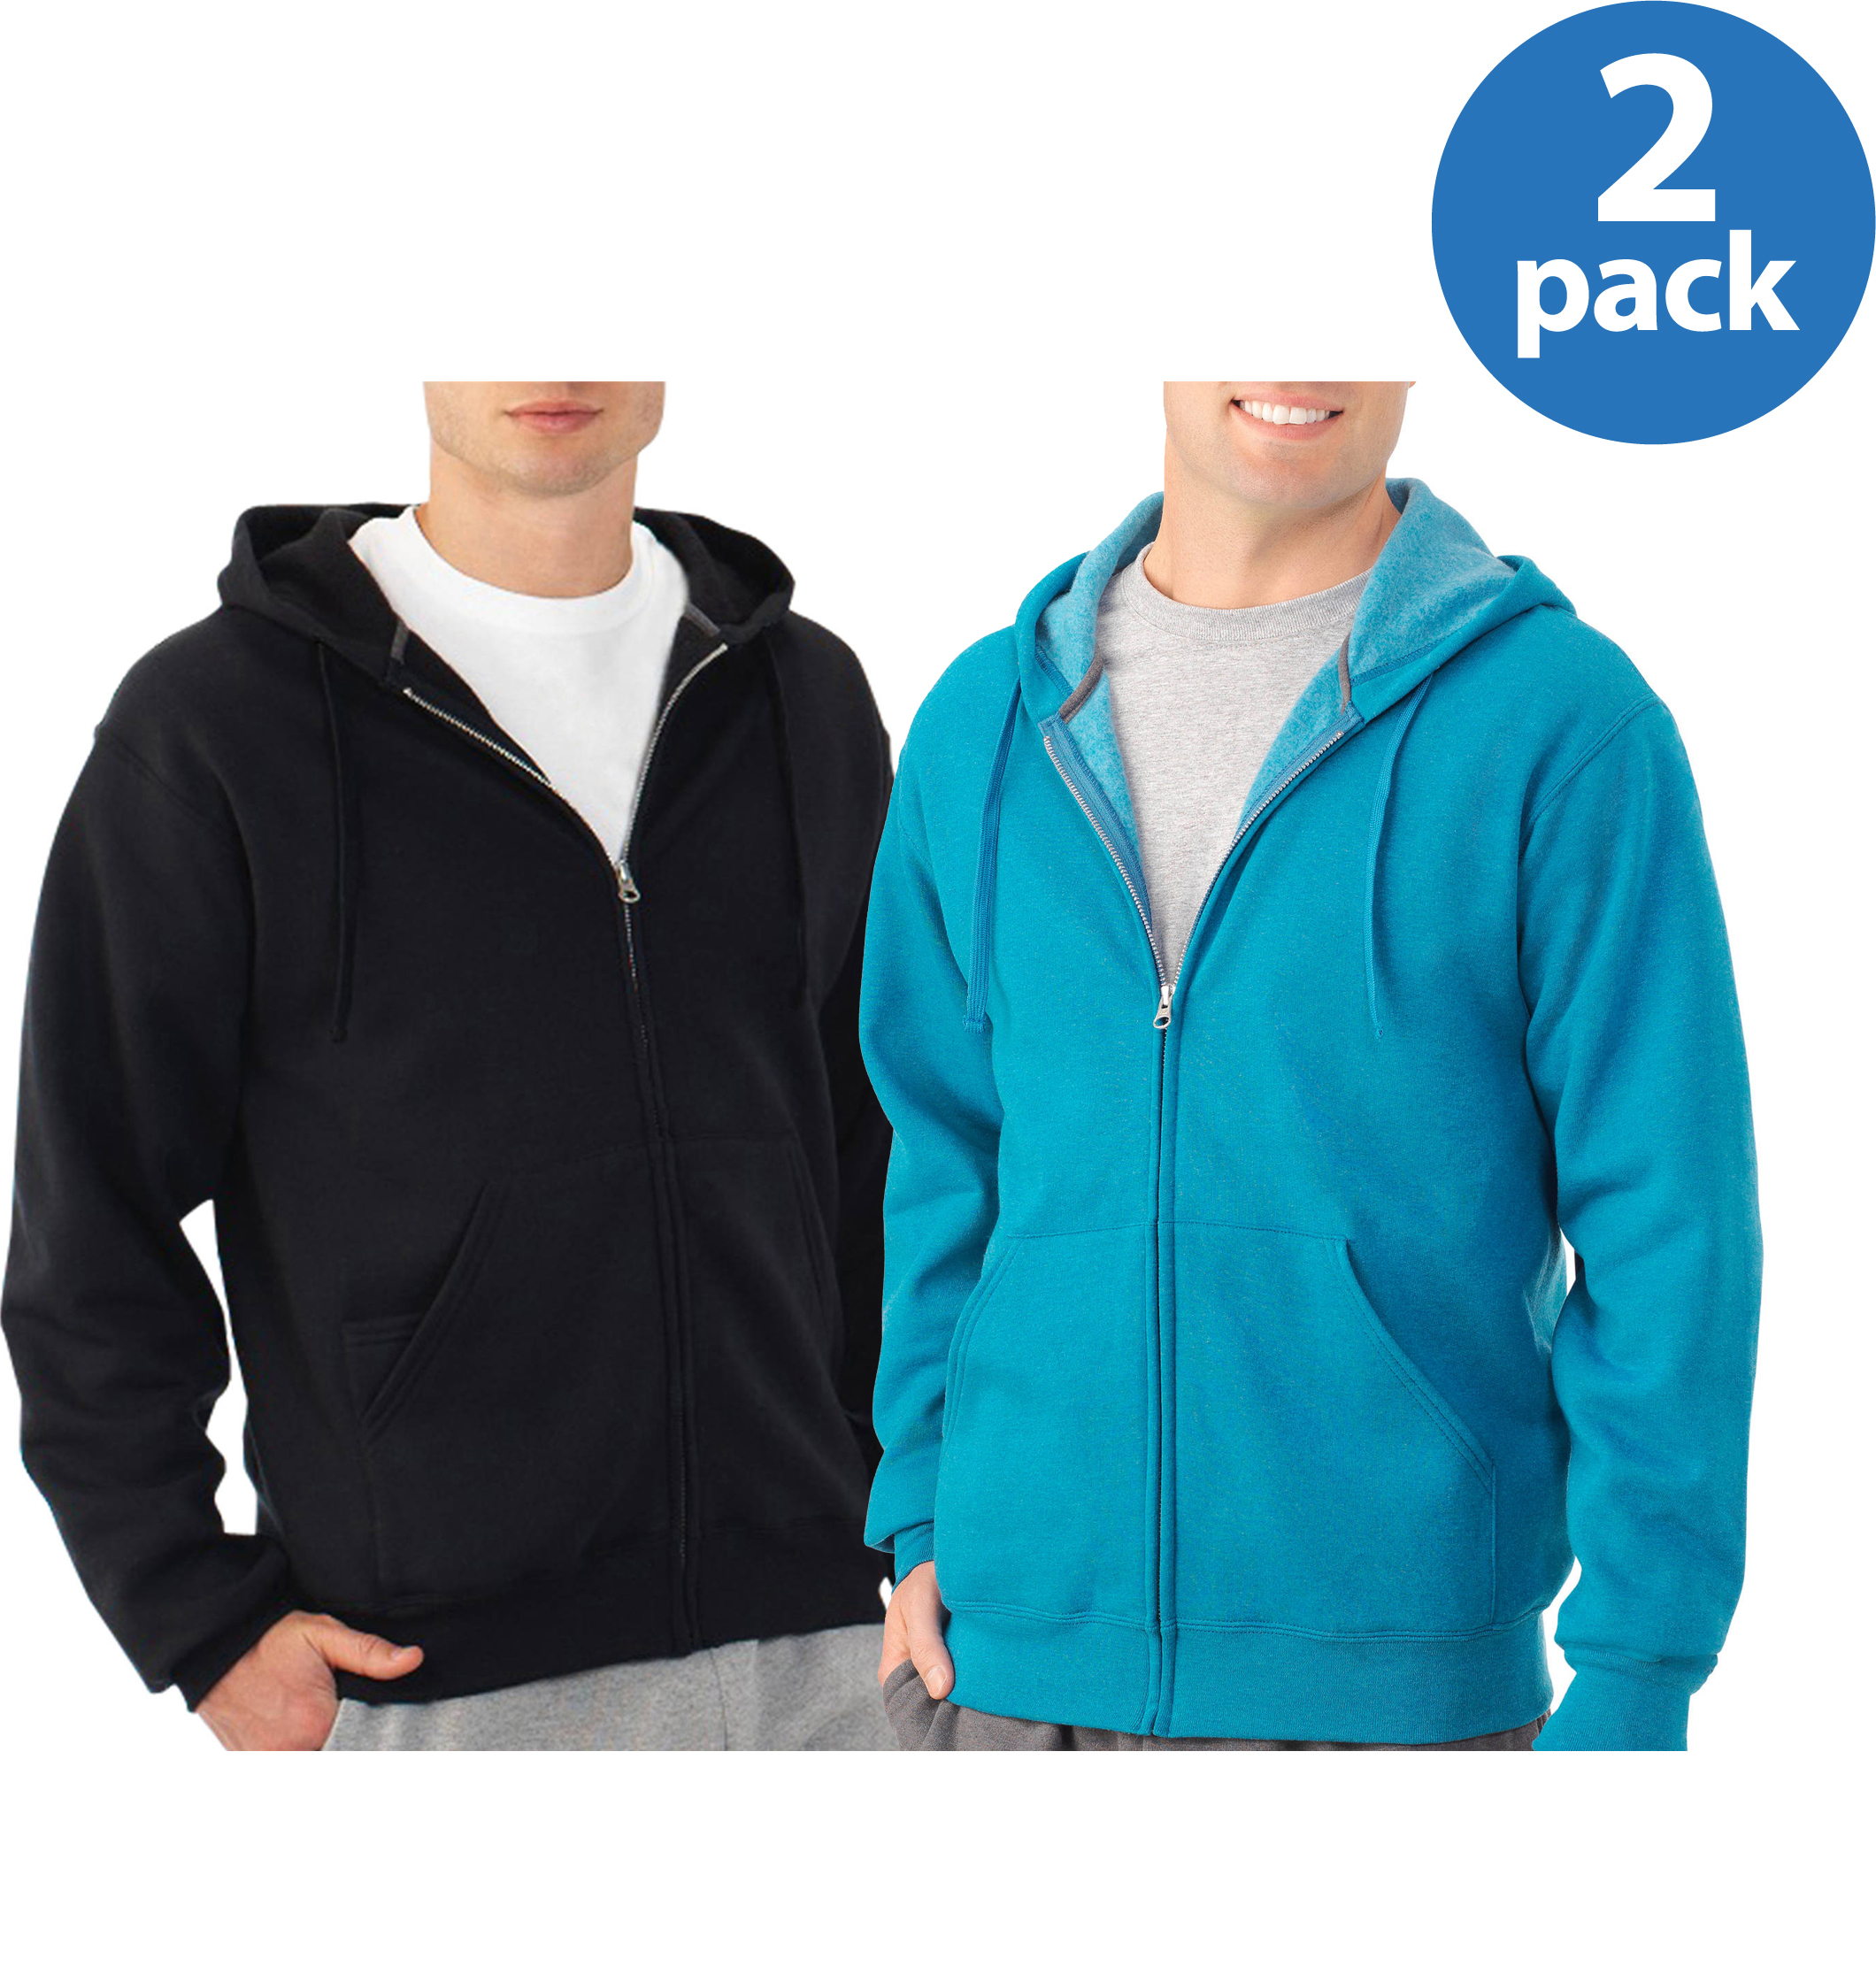 Fruit of the Loom Men's Fleece Full Zip Hoodie, Your Choice 2-Pack